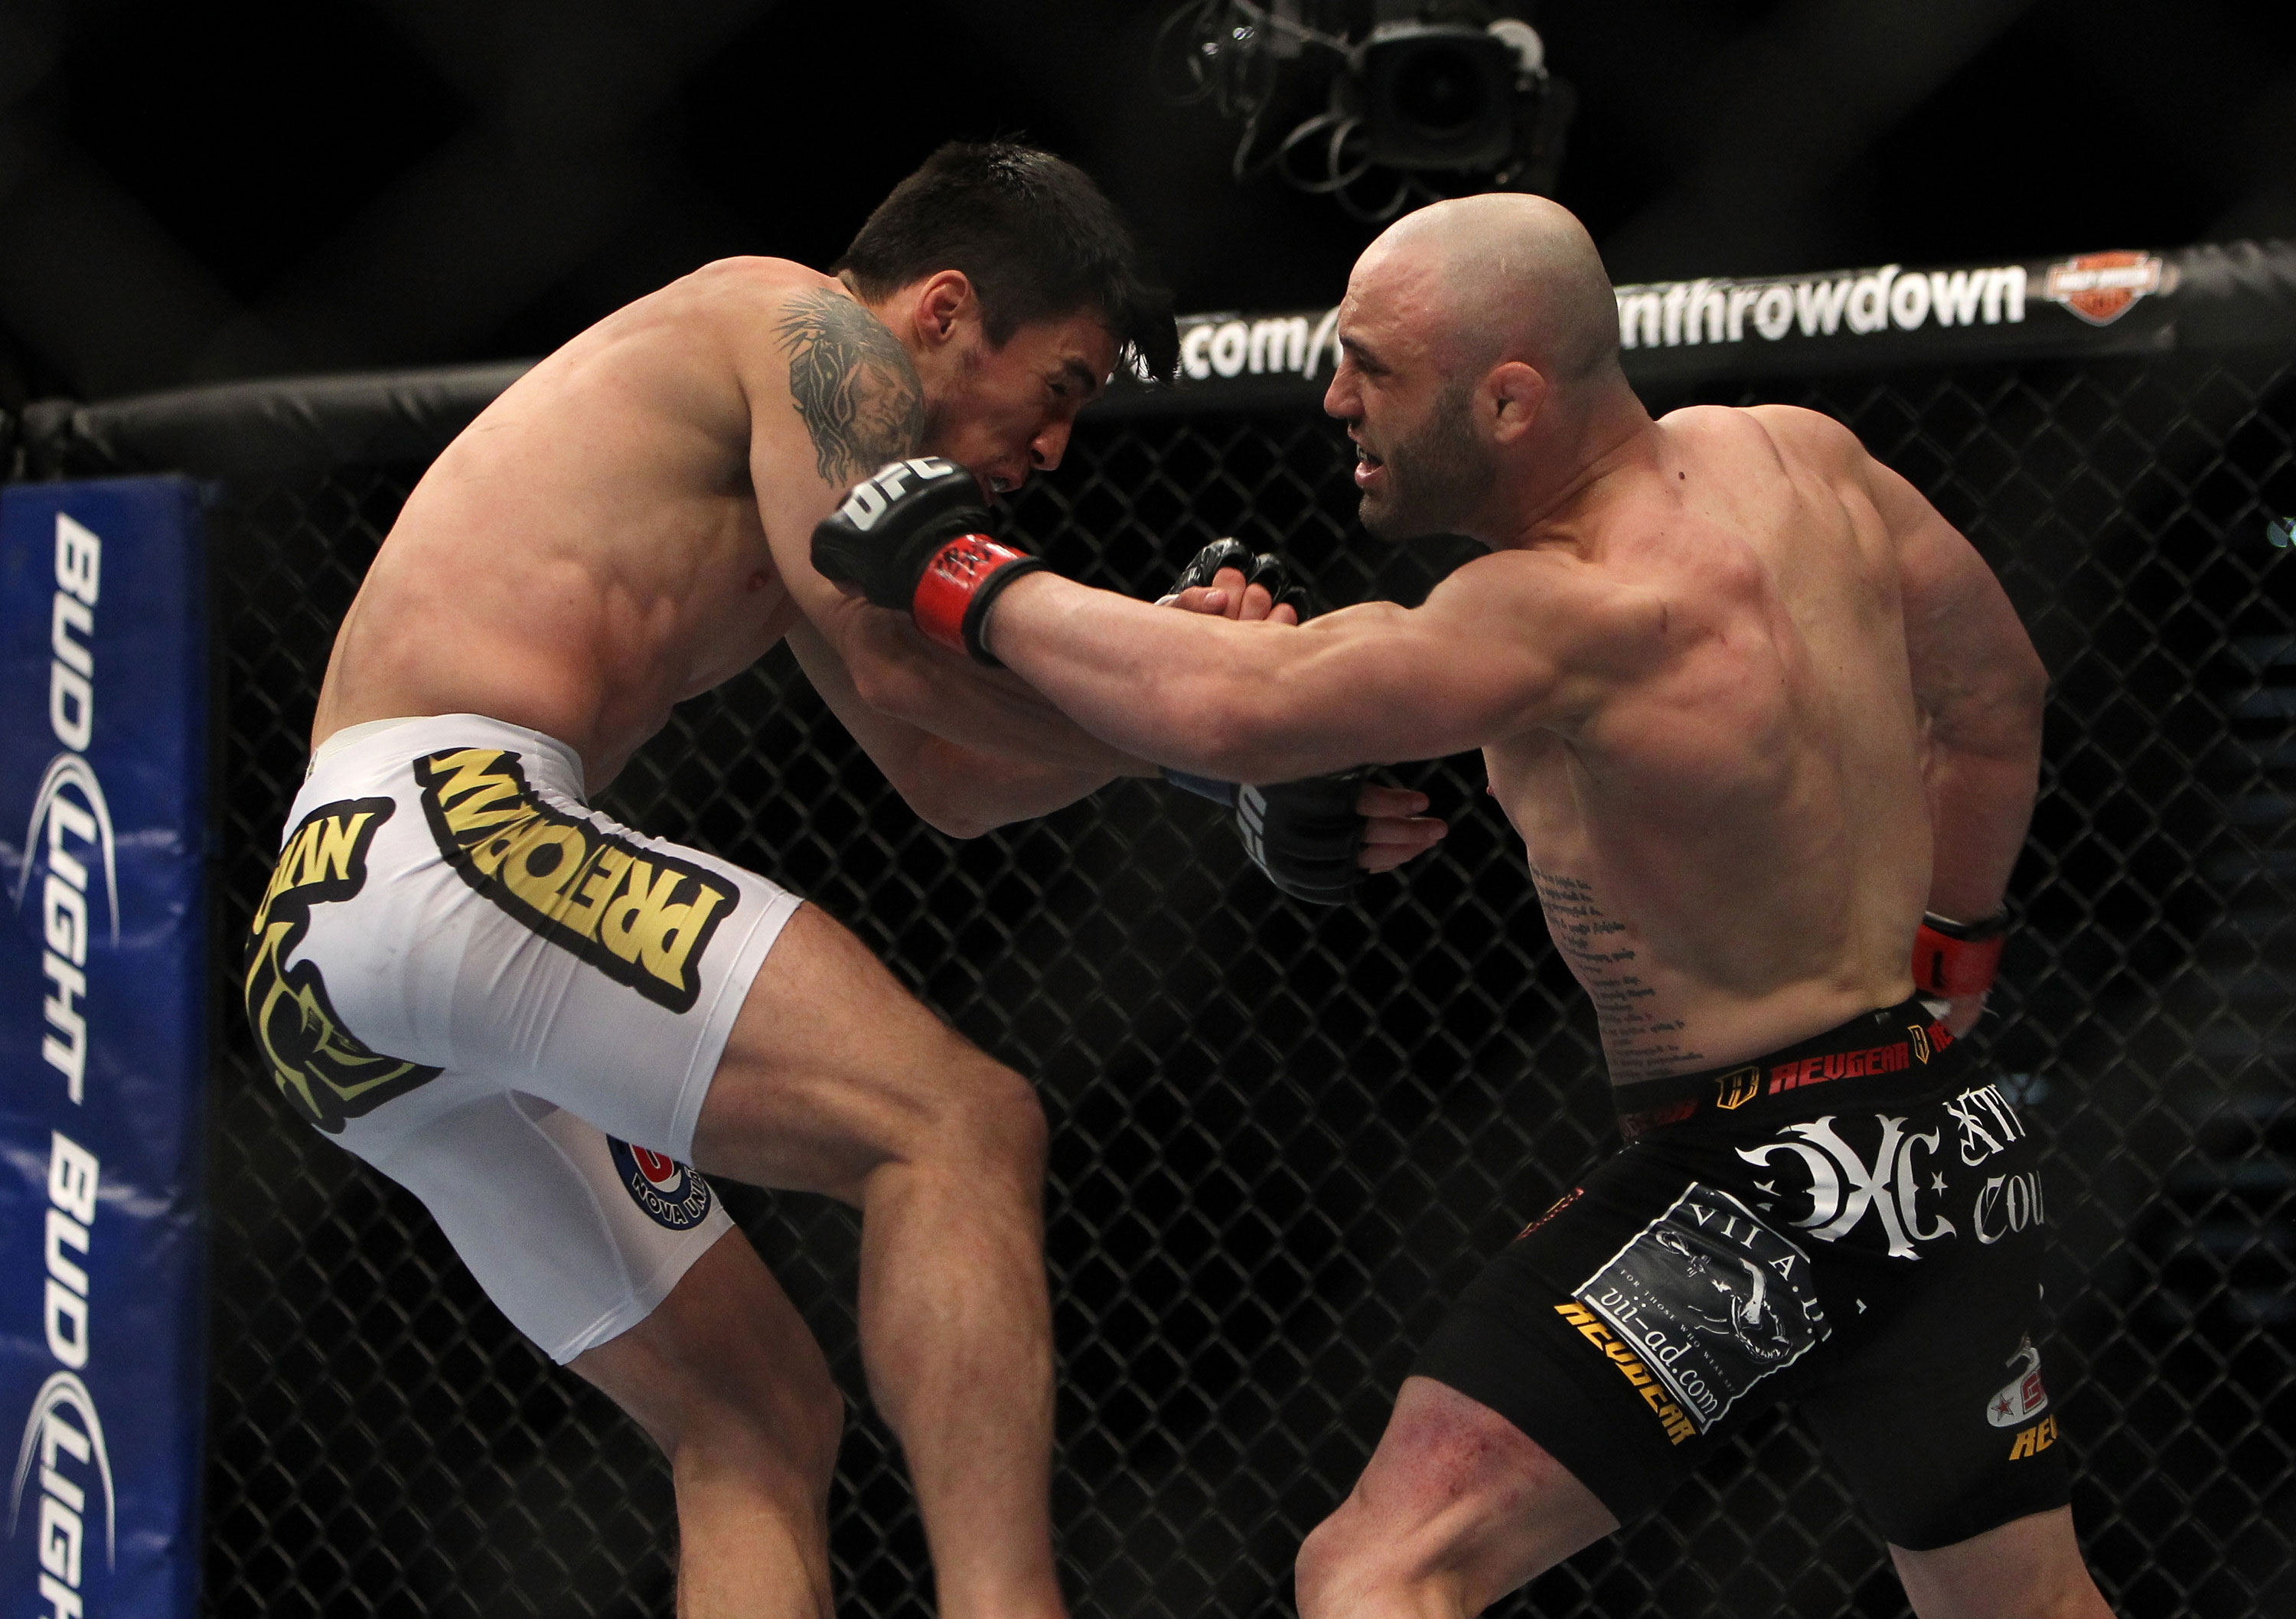 LAS VEGAS, NV - DECEMBER 30:  Manny Gamburyan (right) punches Diego Nunes (left) during the UFC 141 event at the MGM Grand Garden Arena on December 30, 2011 in Las Vegas, Nevada.  (Photo by Josh Hedges/Zuffa LLC/Zuffa LLC via Getty Images) *** Local Caption *** Manny Gamburyan; Diego Nunes